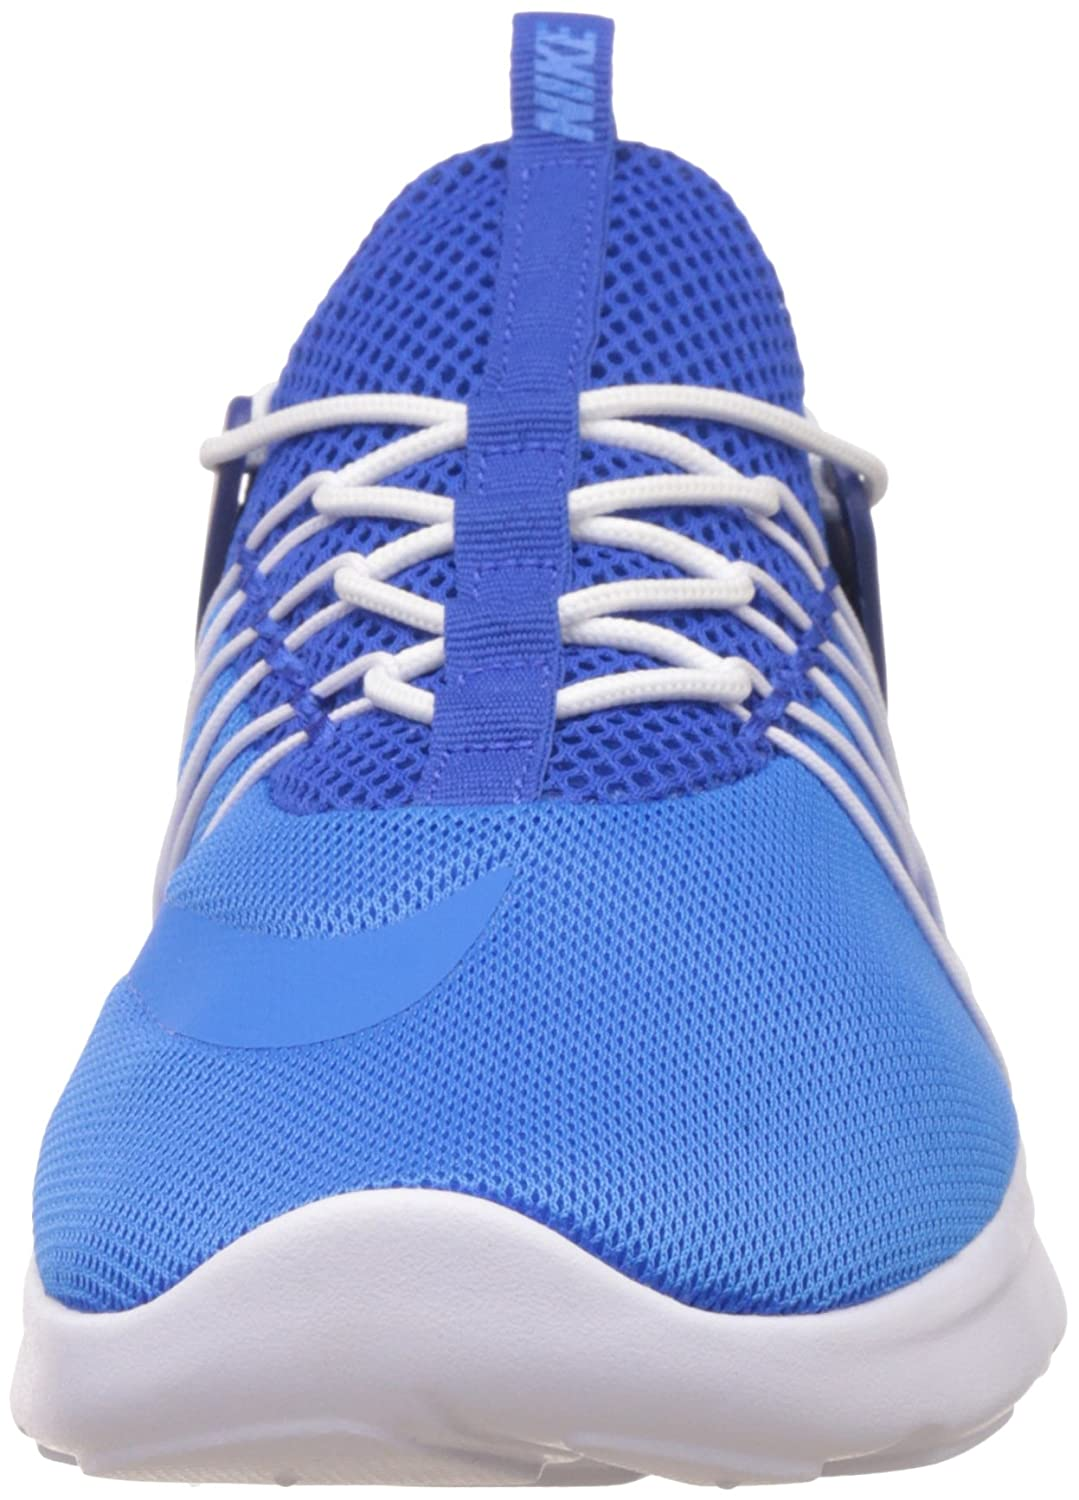 64a6a56a7c2d Nike Men s Running Shoes  Buy Online at Low Prices in India - Amazon.in